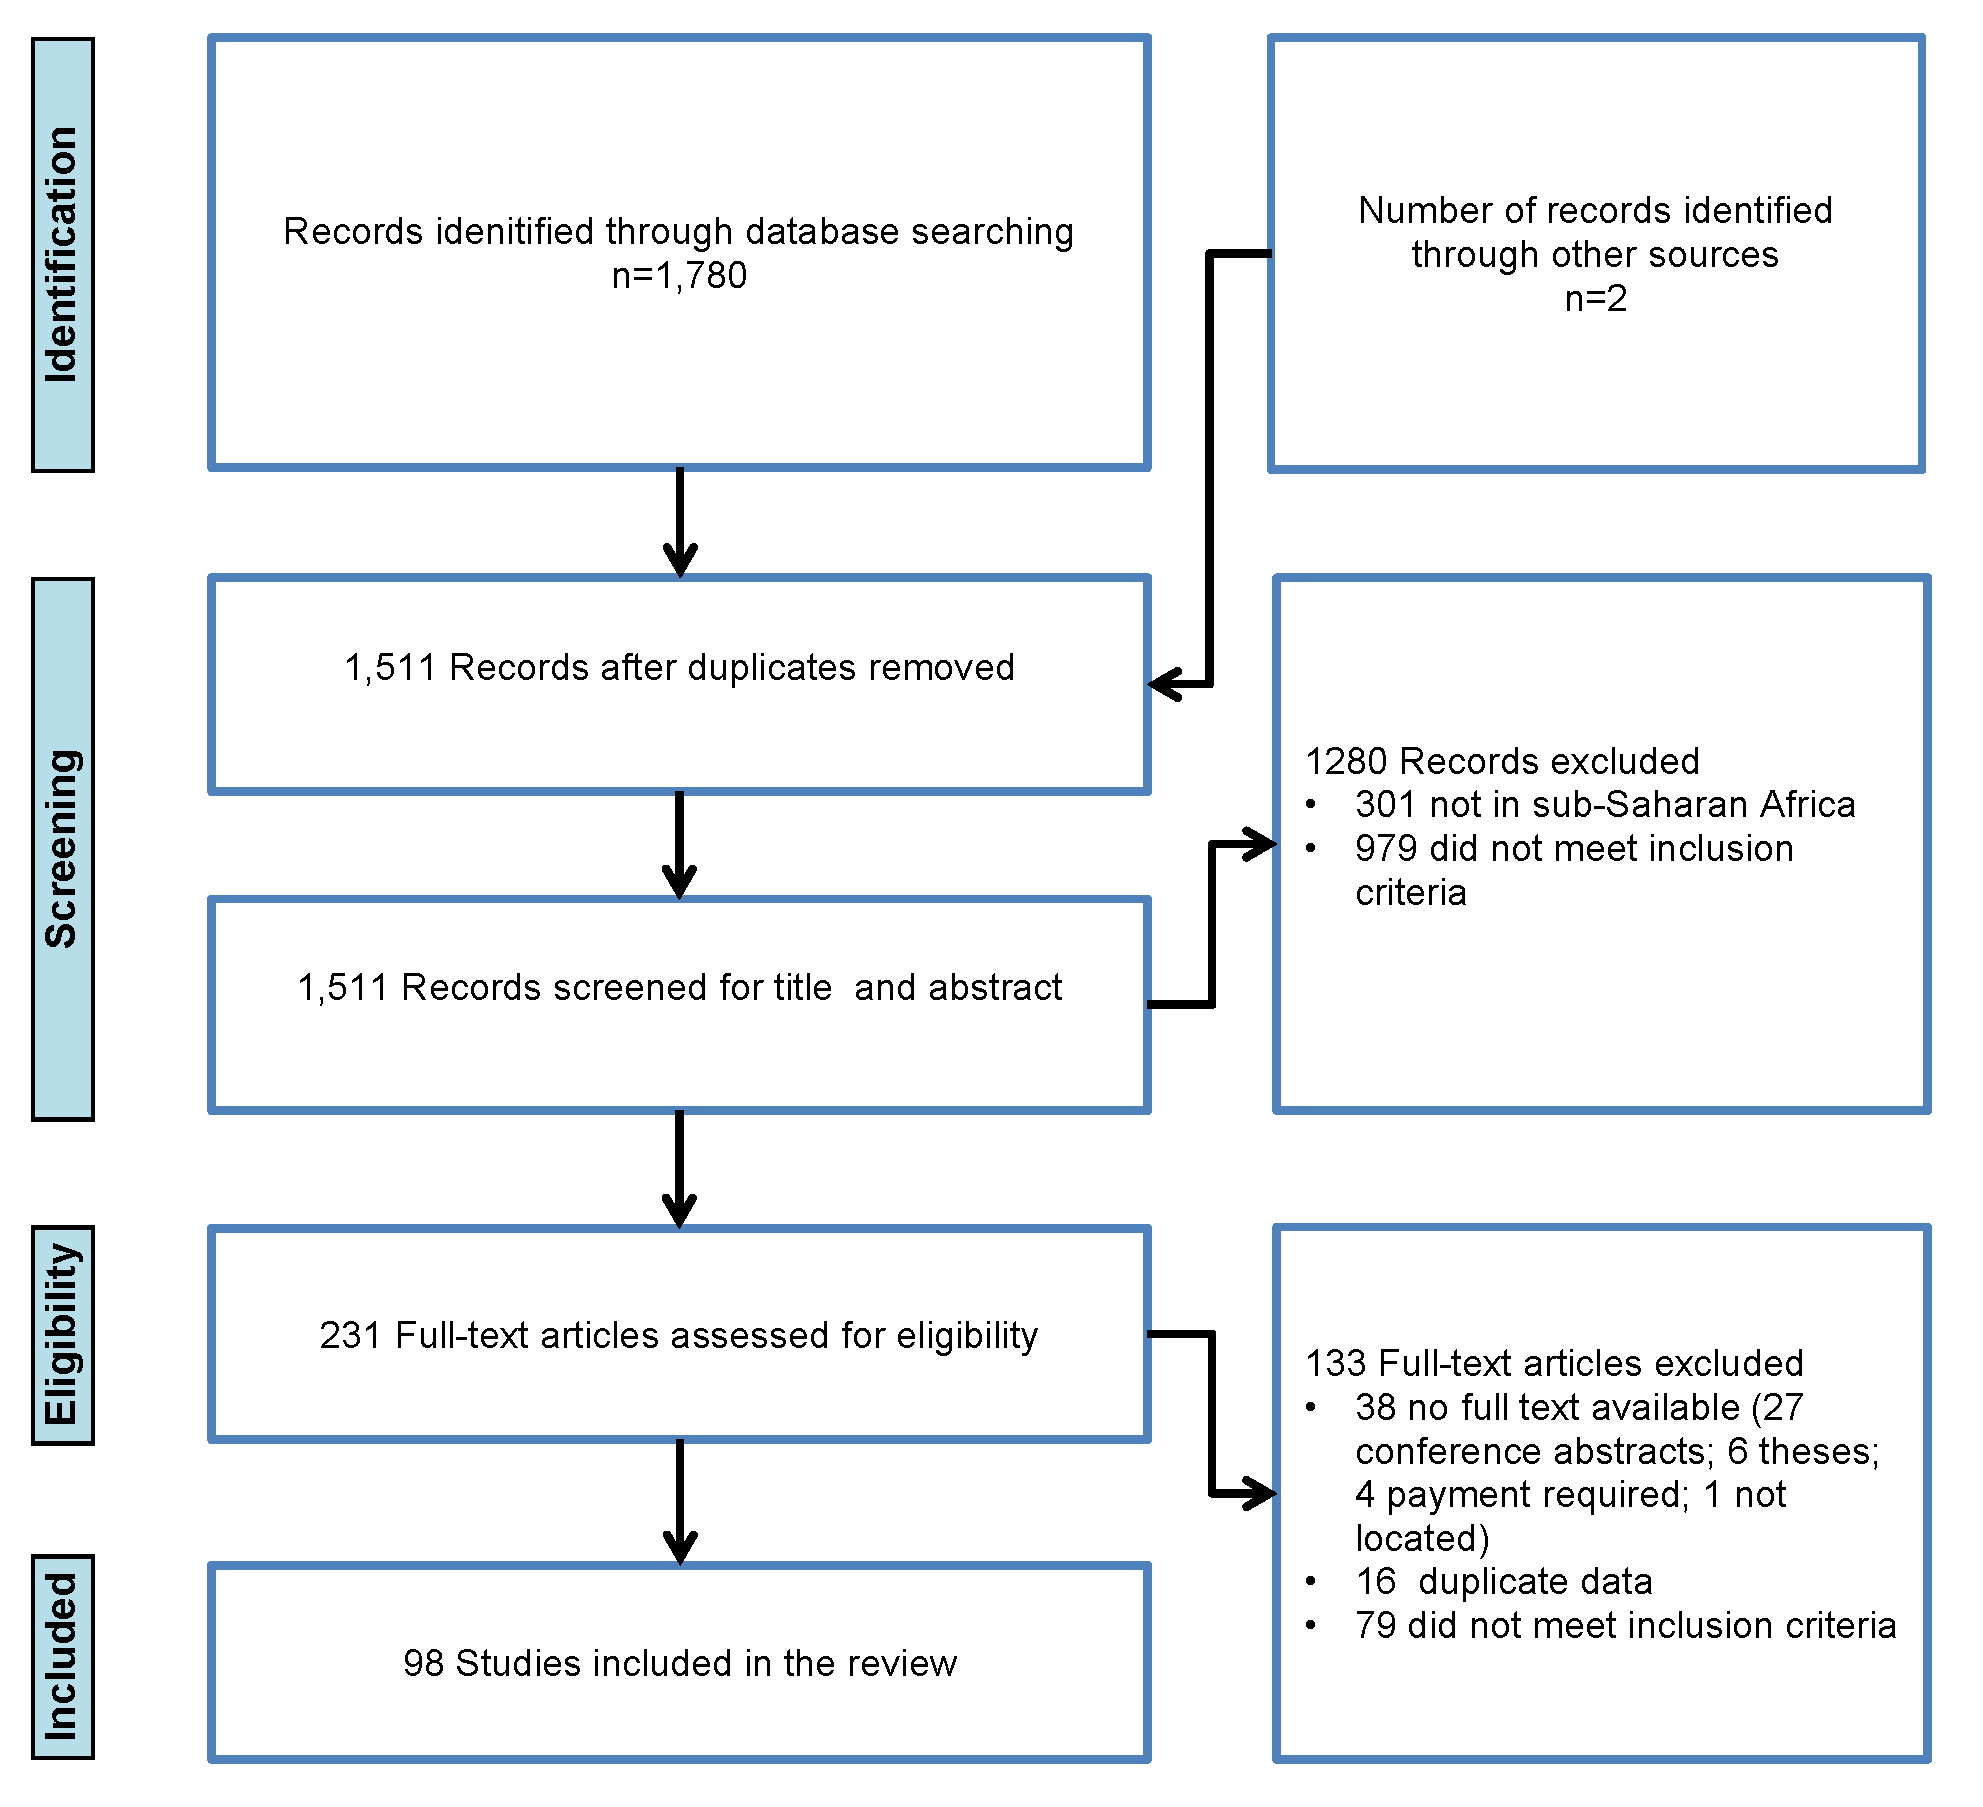 Flowchart of studies included in the review.